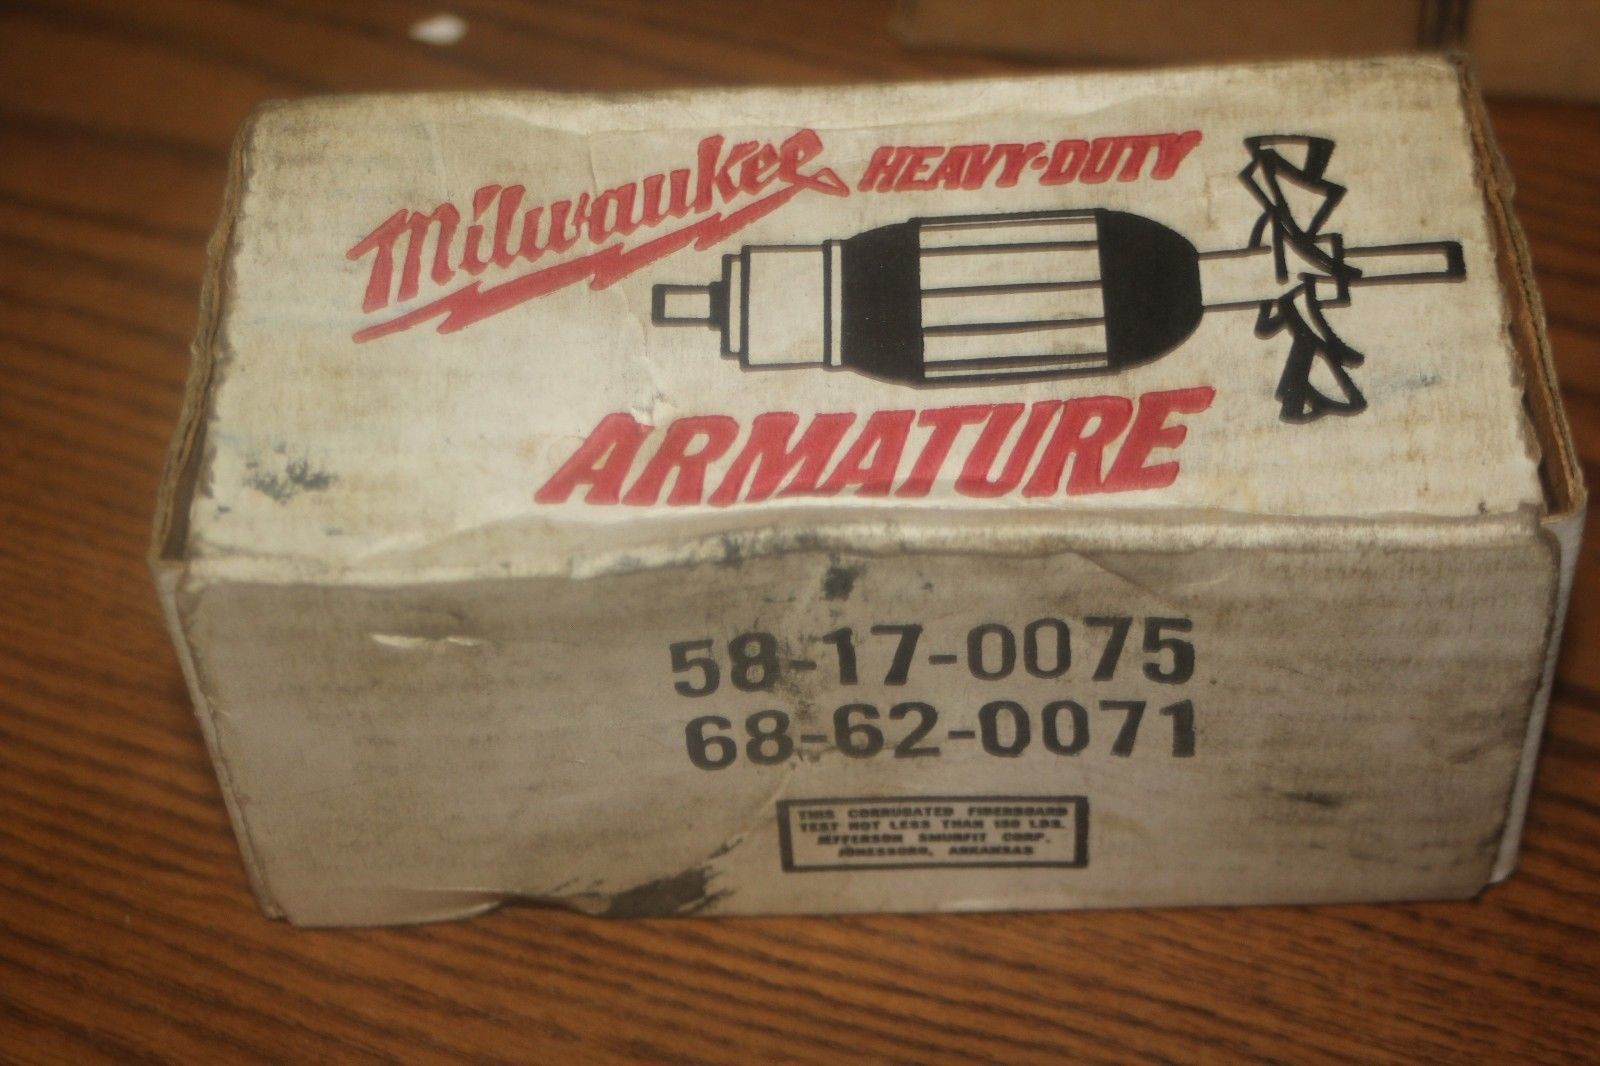 Primary image for Milwaukee Armature 58-17-0075